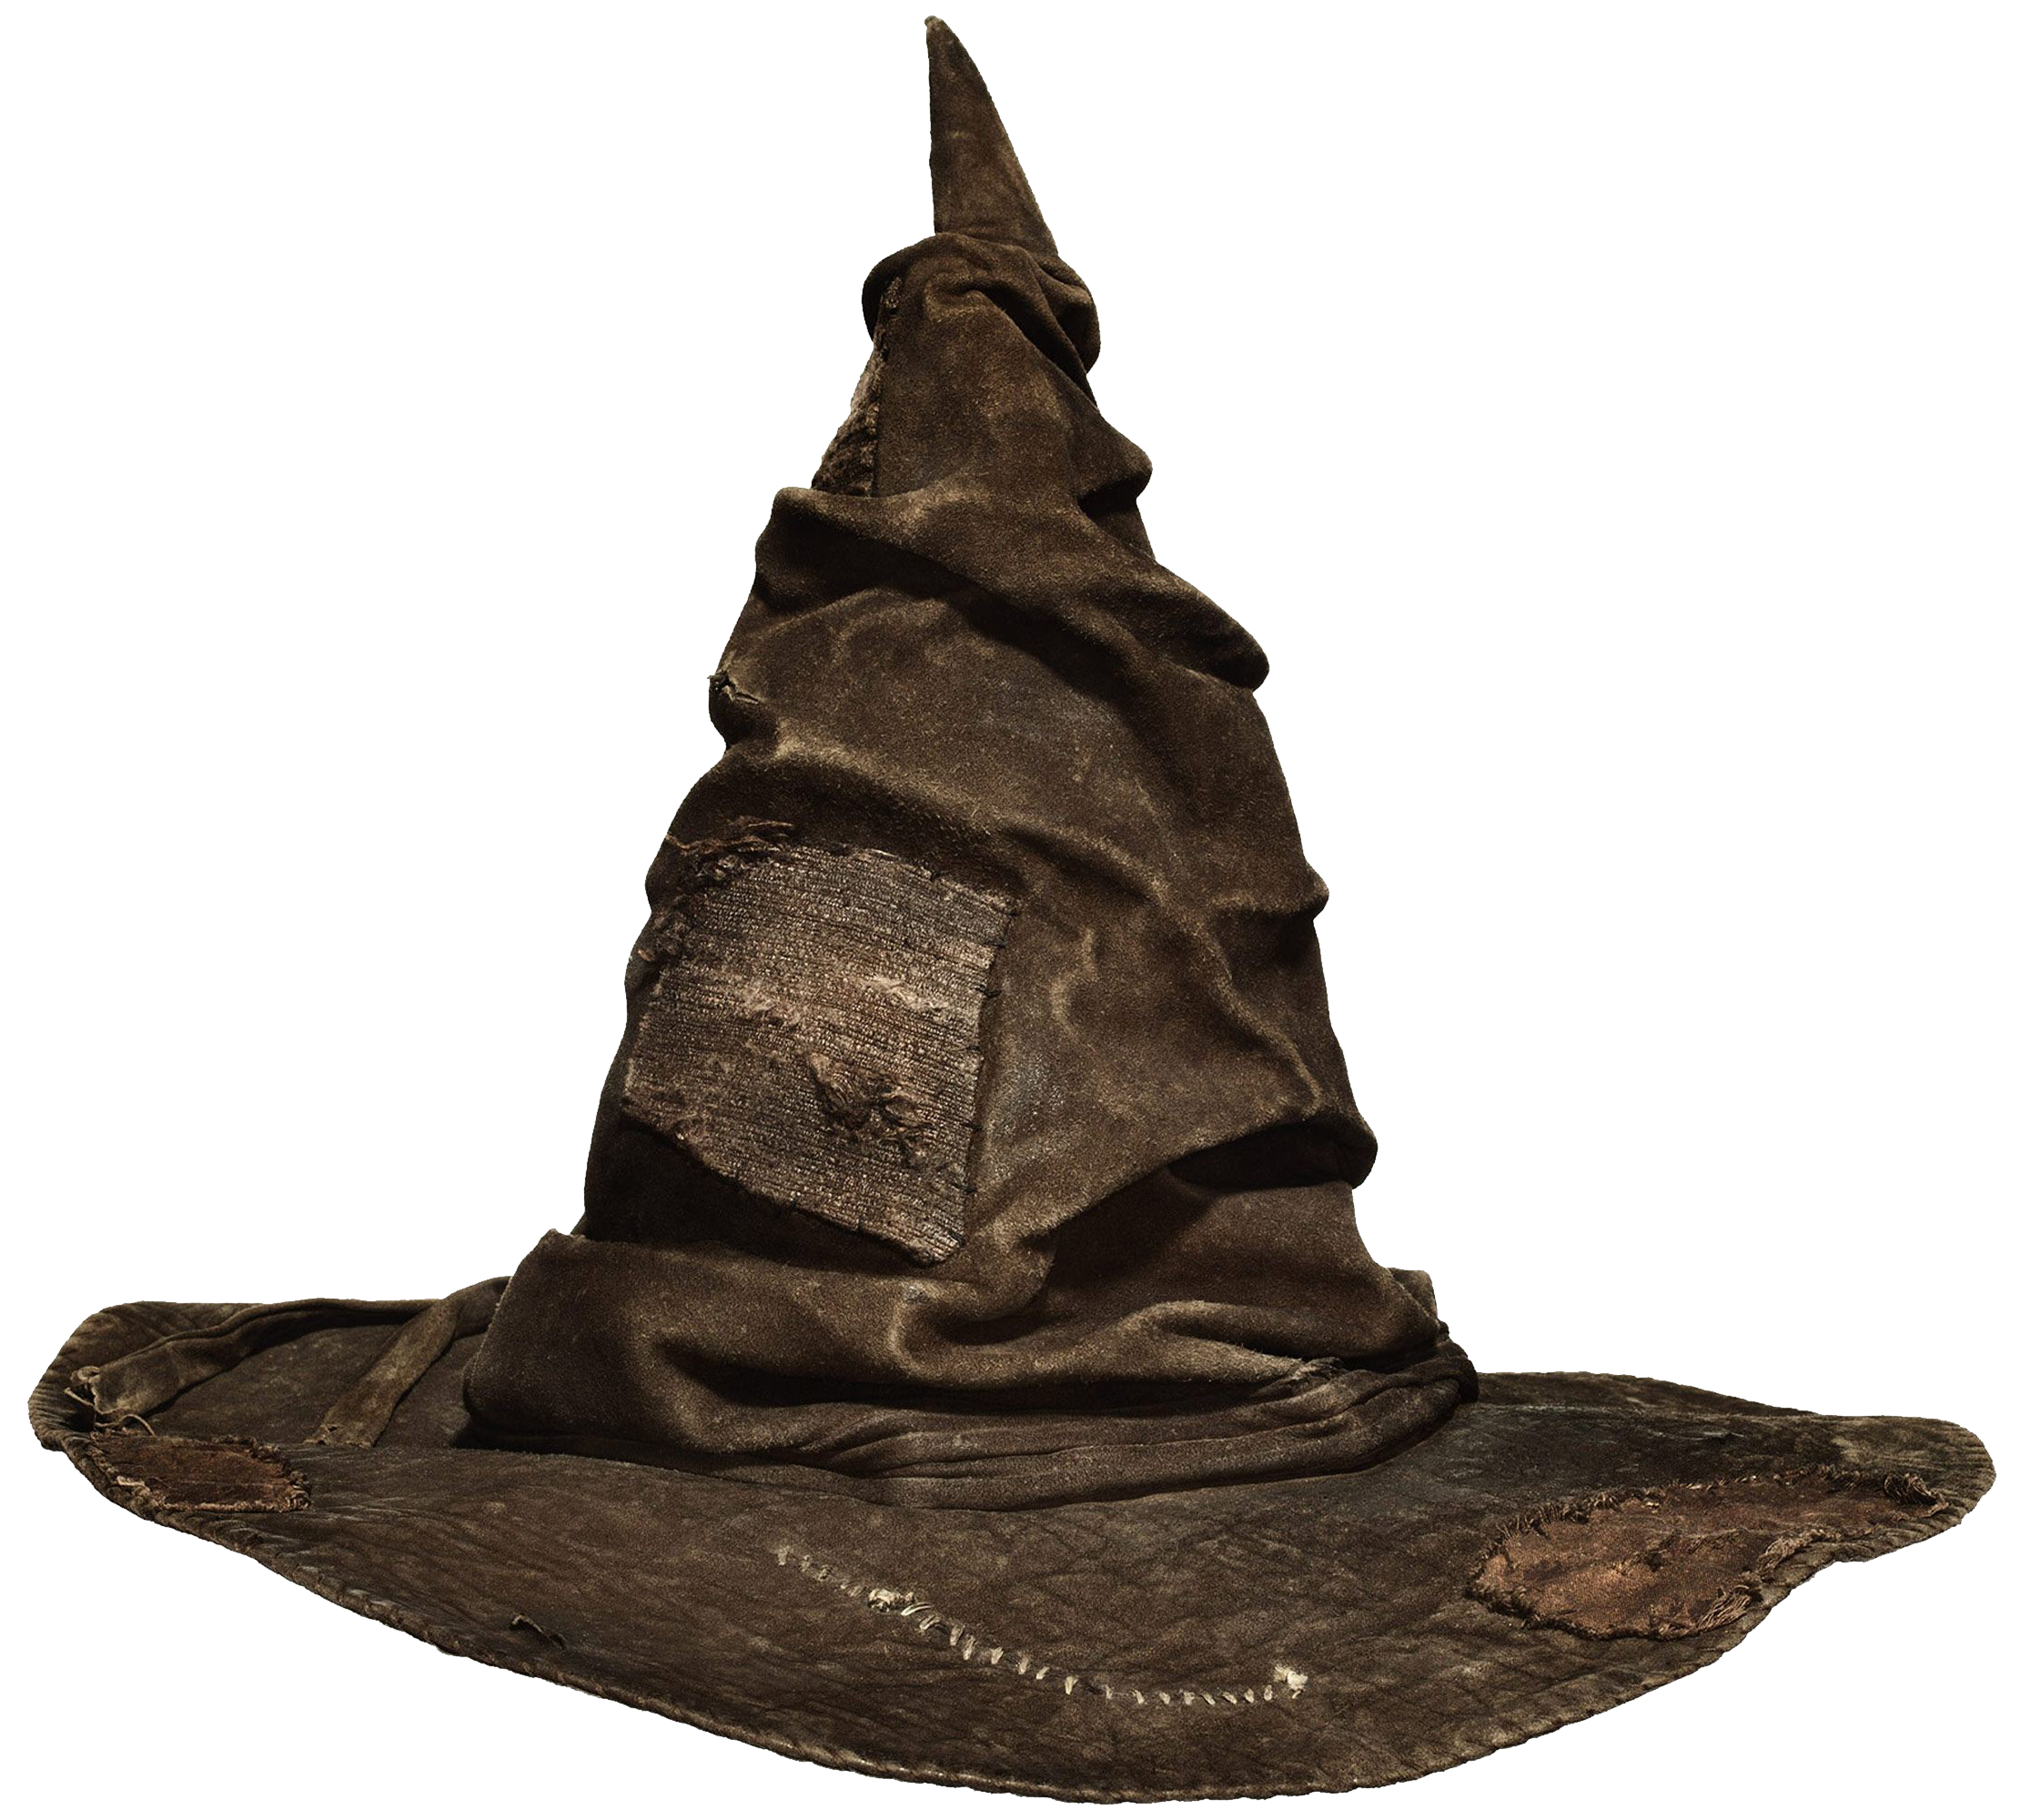 Télécharger photo sorting hat png